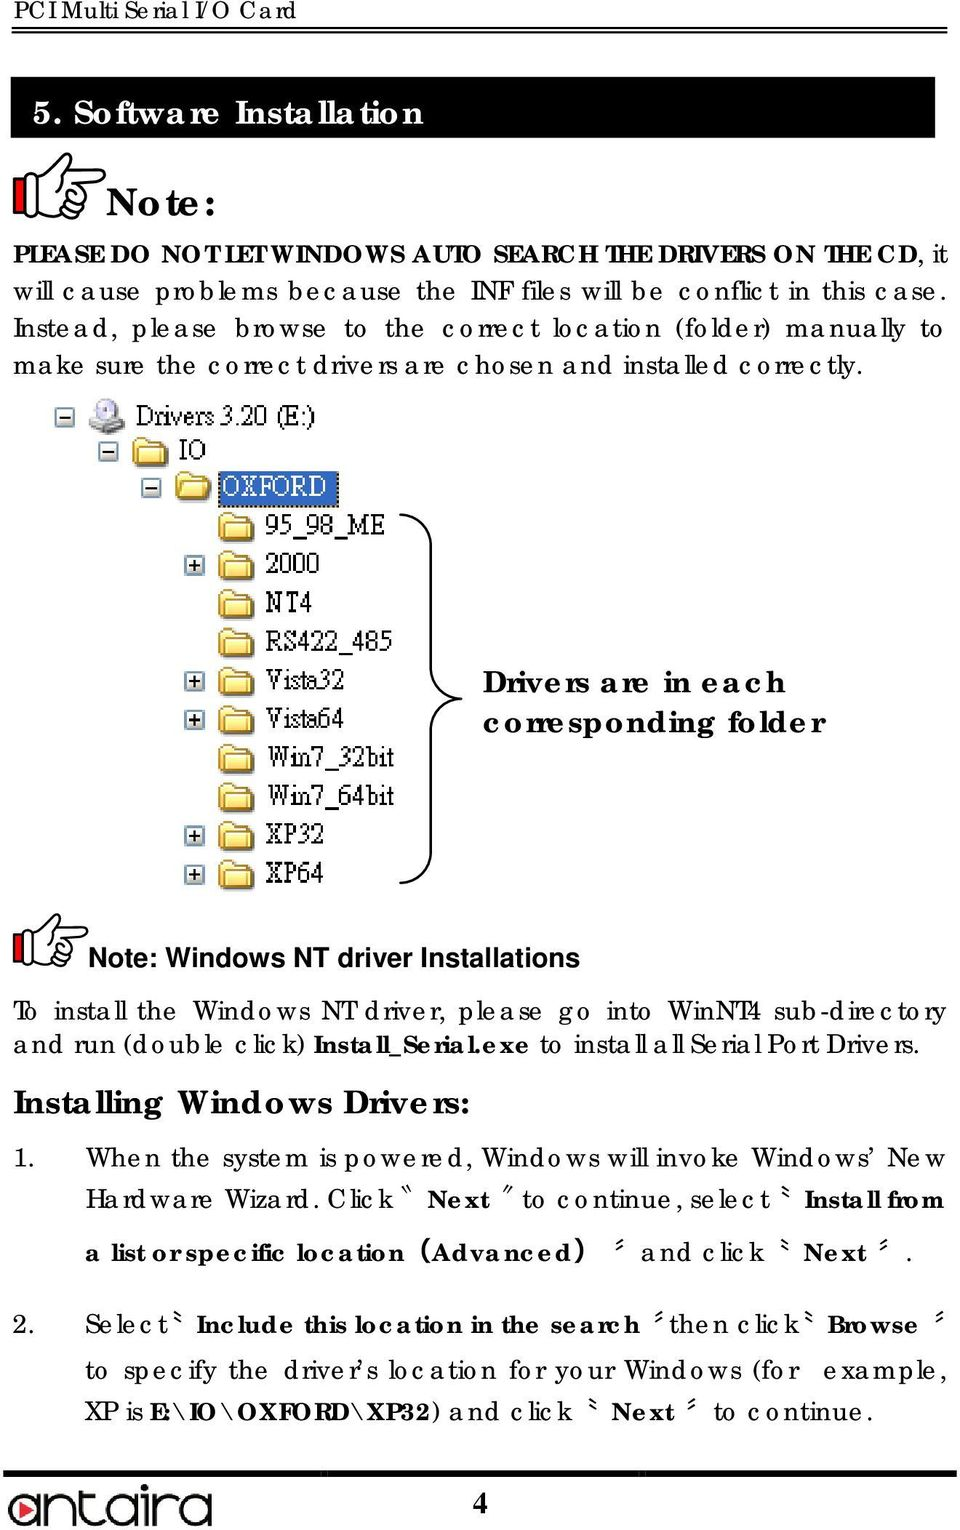 Drivers are in each corresponding folder Note: Windows NT driver Installations To install the Windows NT driver, please go into WinNT4 sub-directory and run (double click) Install_Serial.